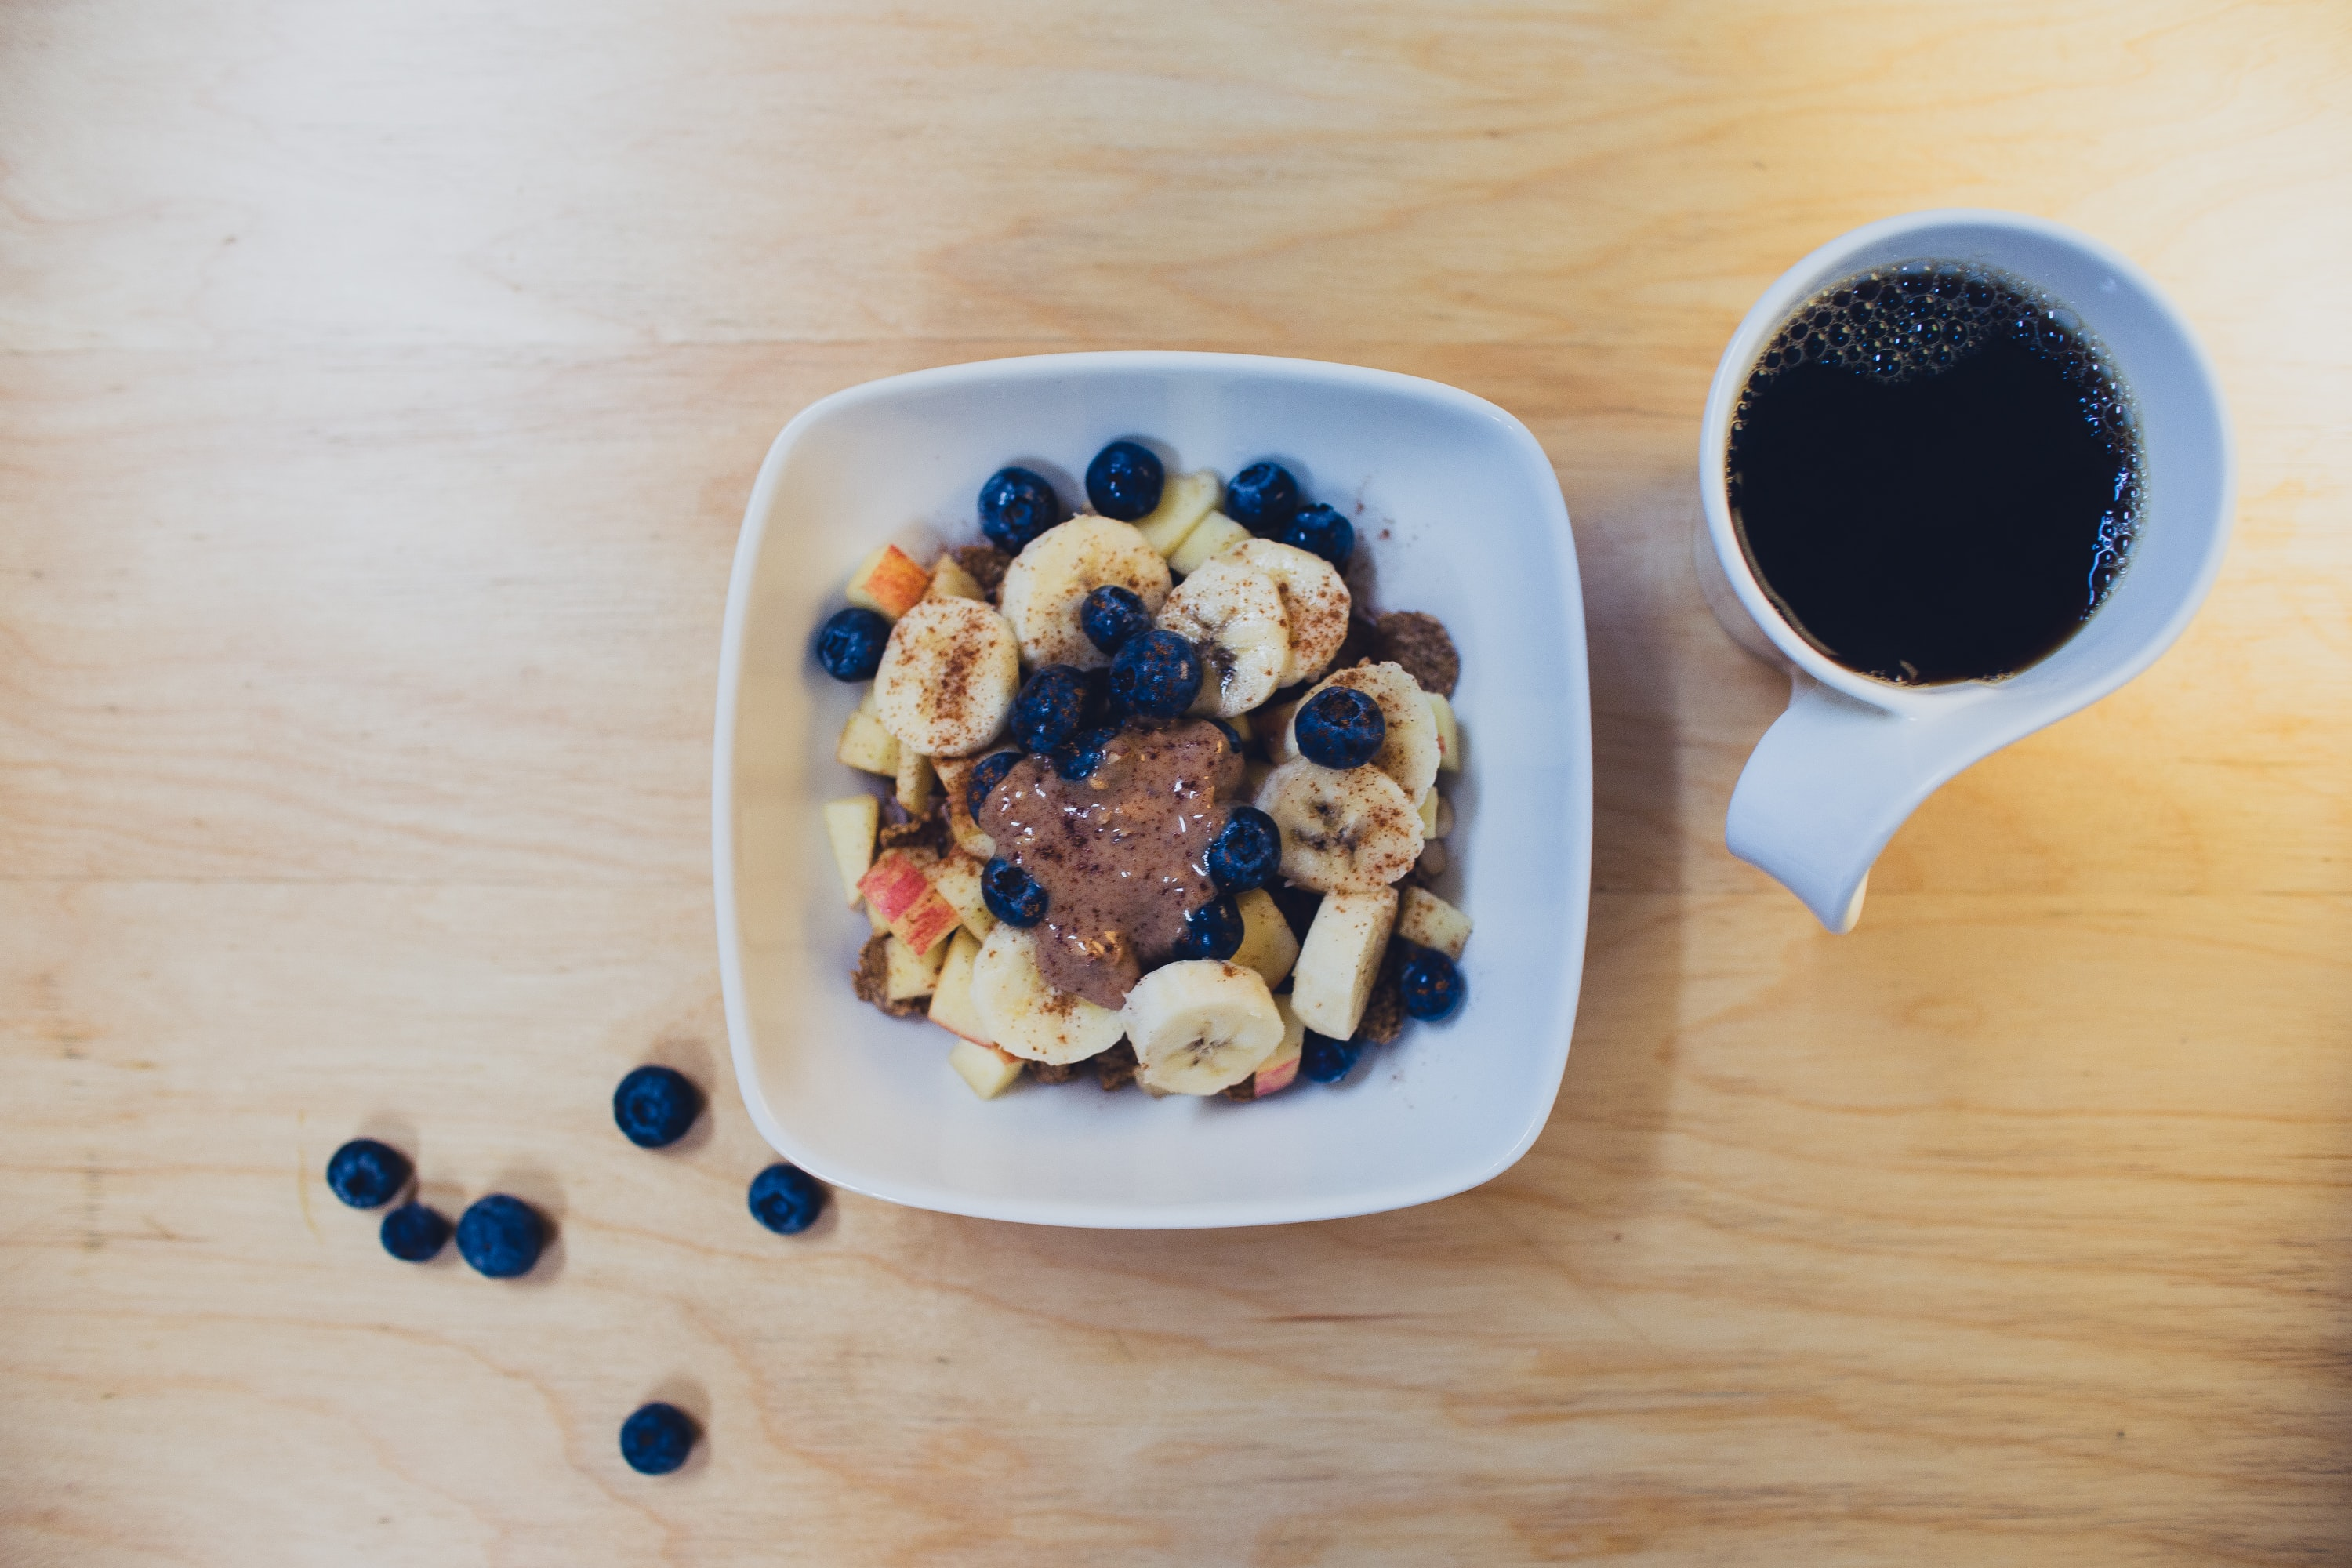 sliced bananas with berries and peanut butter beside cup of coffee on table